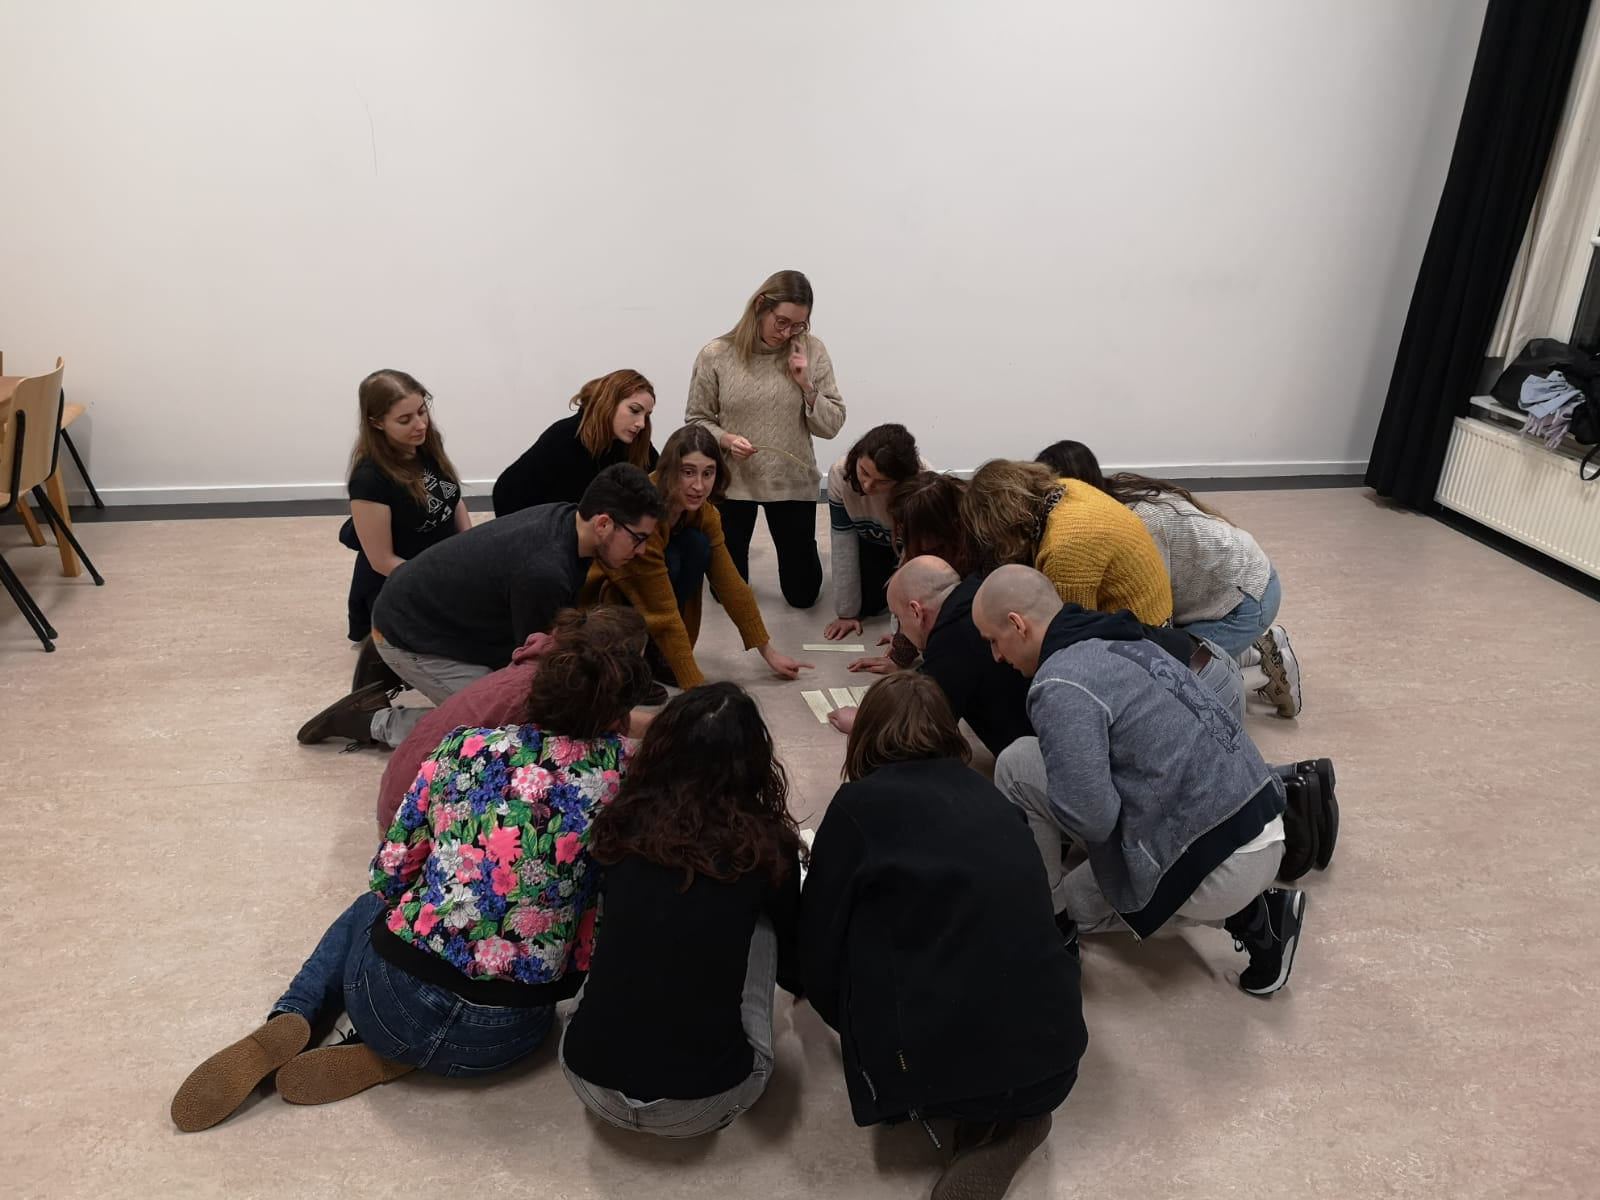 Acting Class Act Attack. A group of people form a circle, sitting on the floor, looking at some notes they have laying on the ground